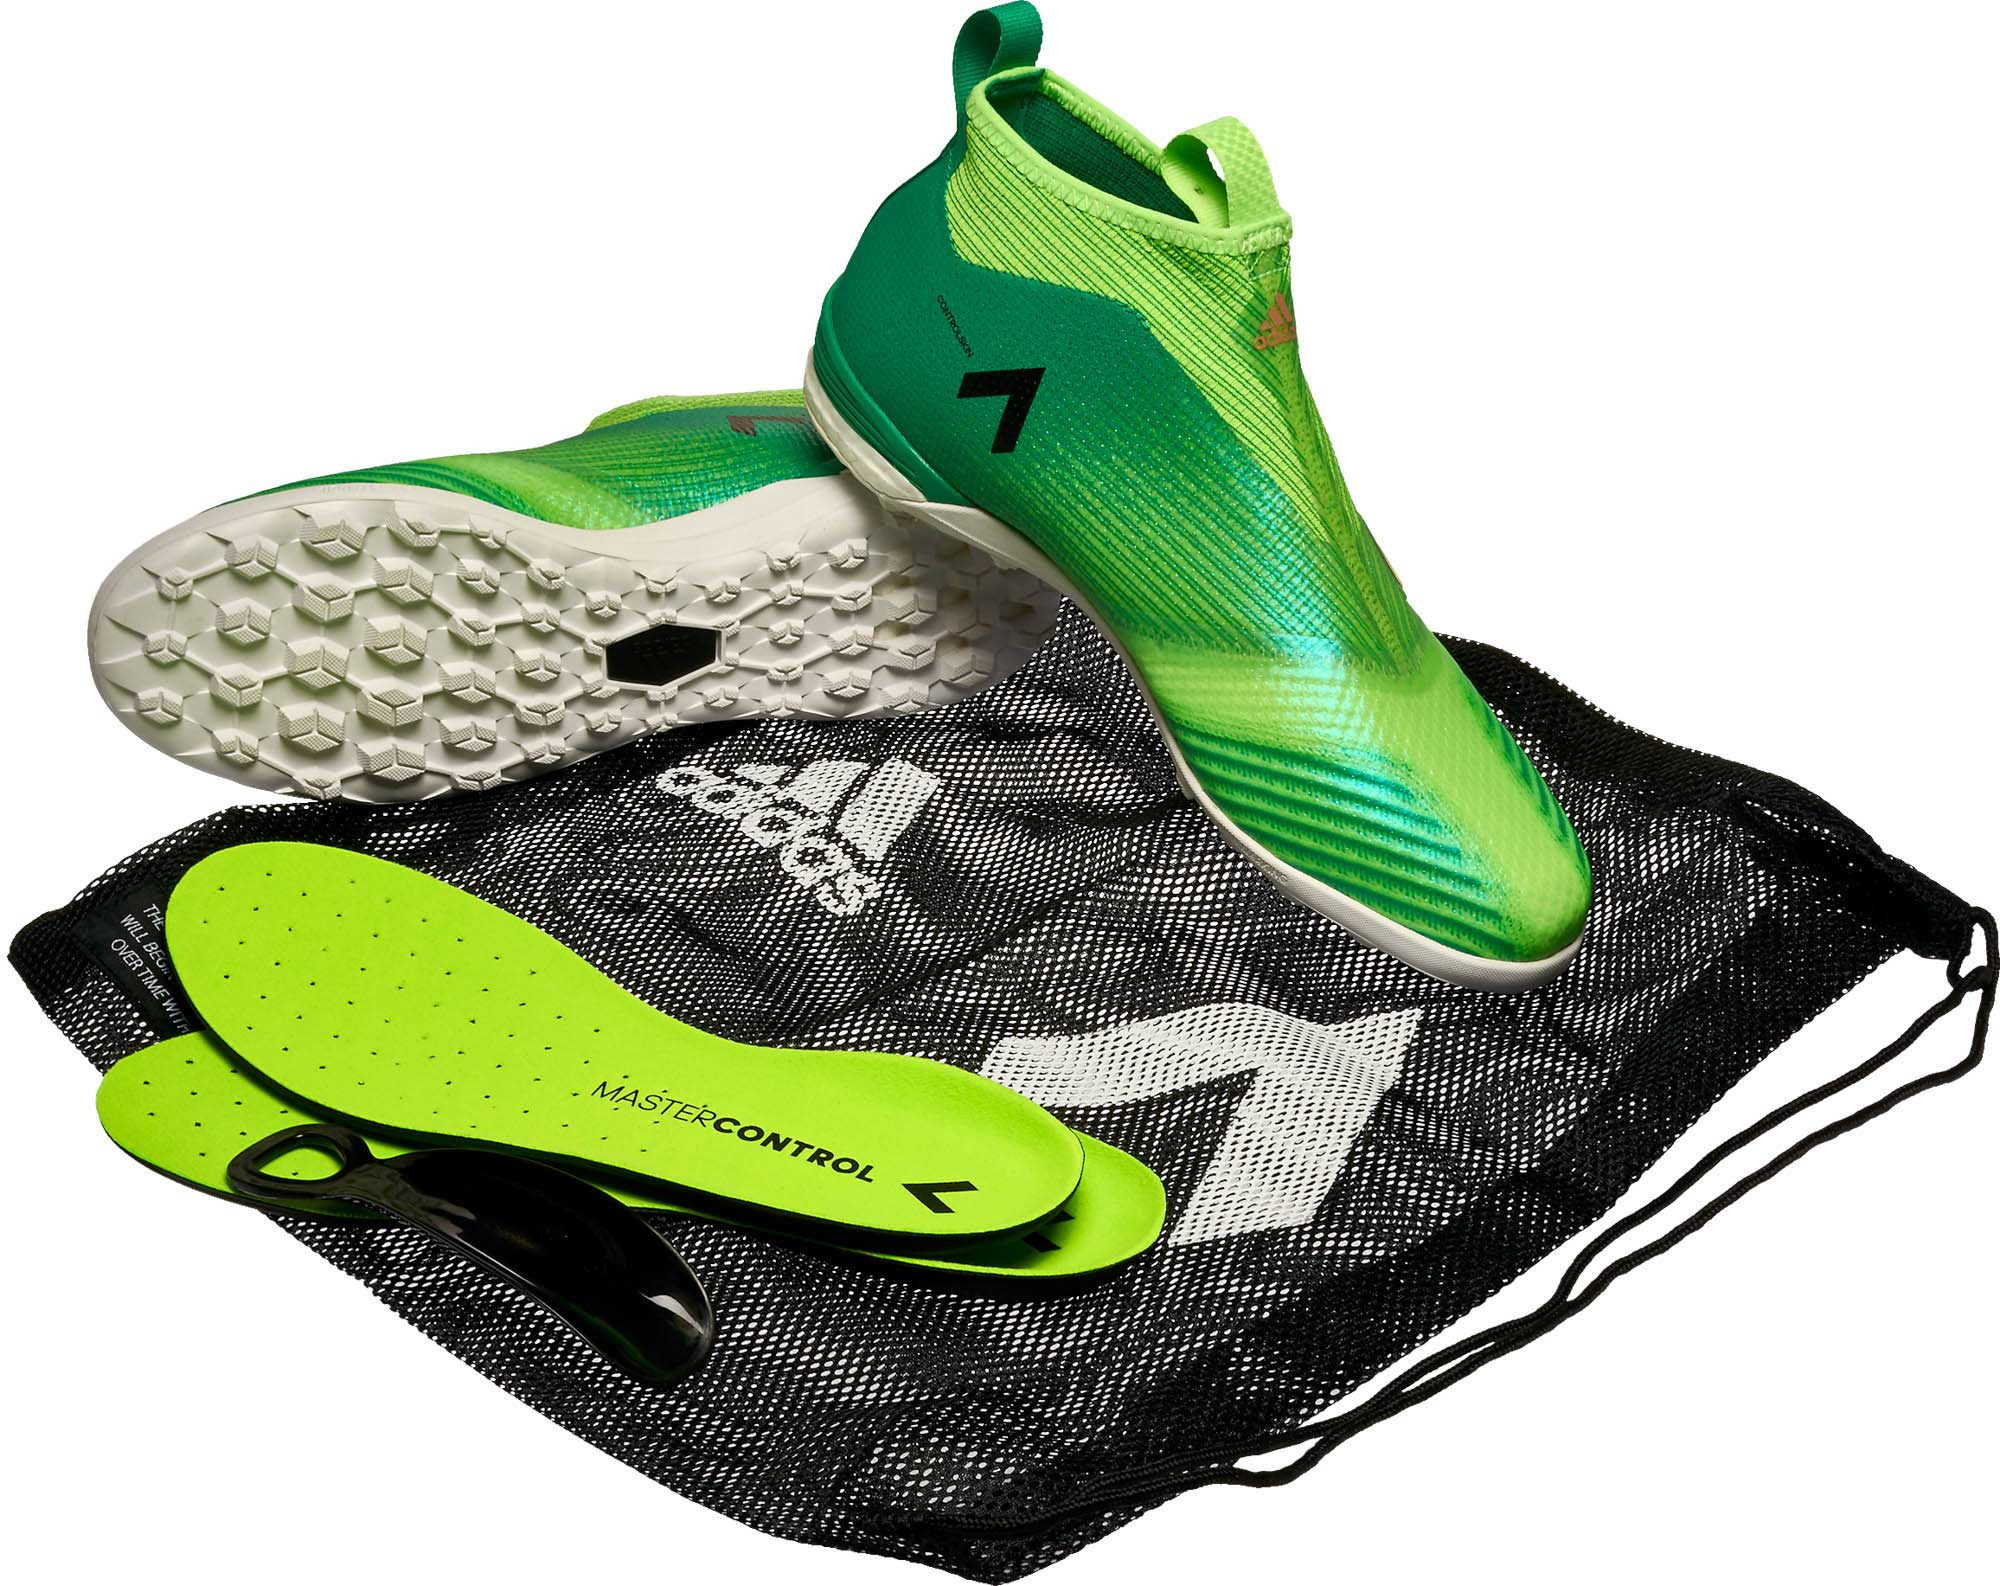 adidas ACE Tango 17 Purecontrol Green Turf Shoes